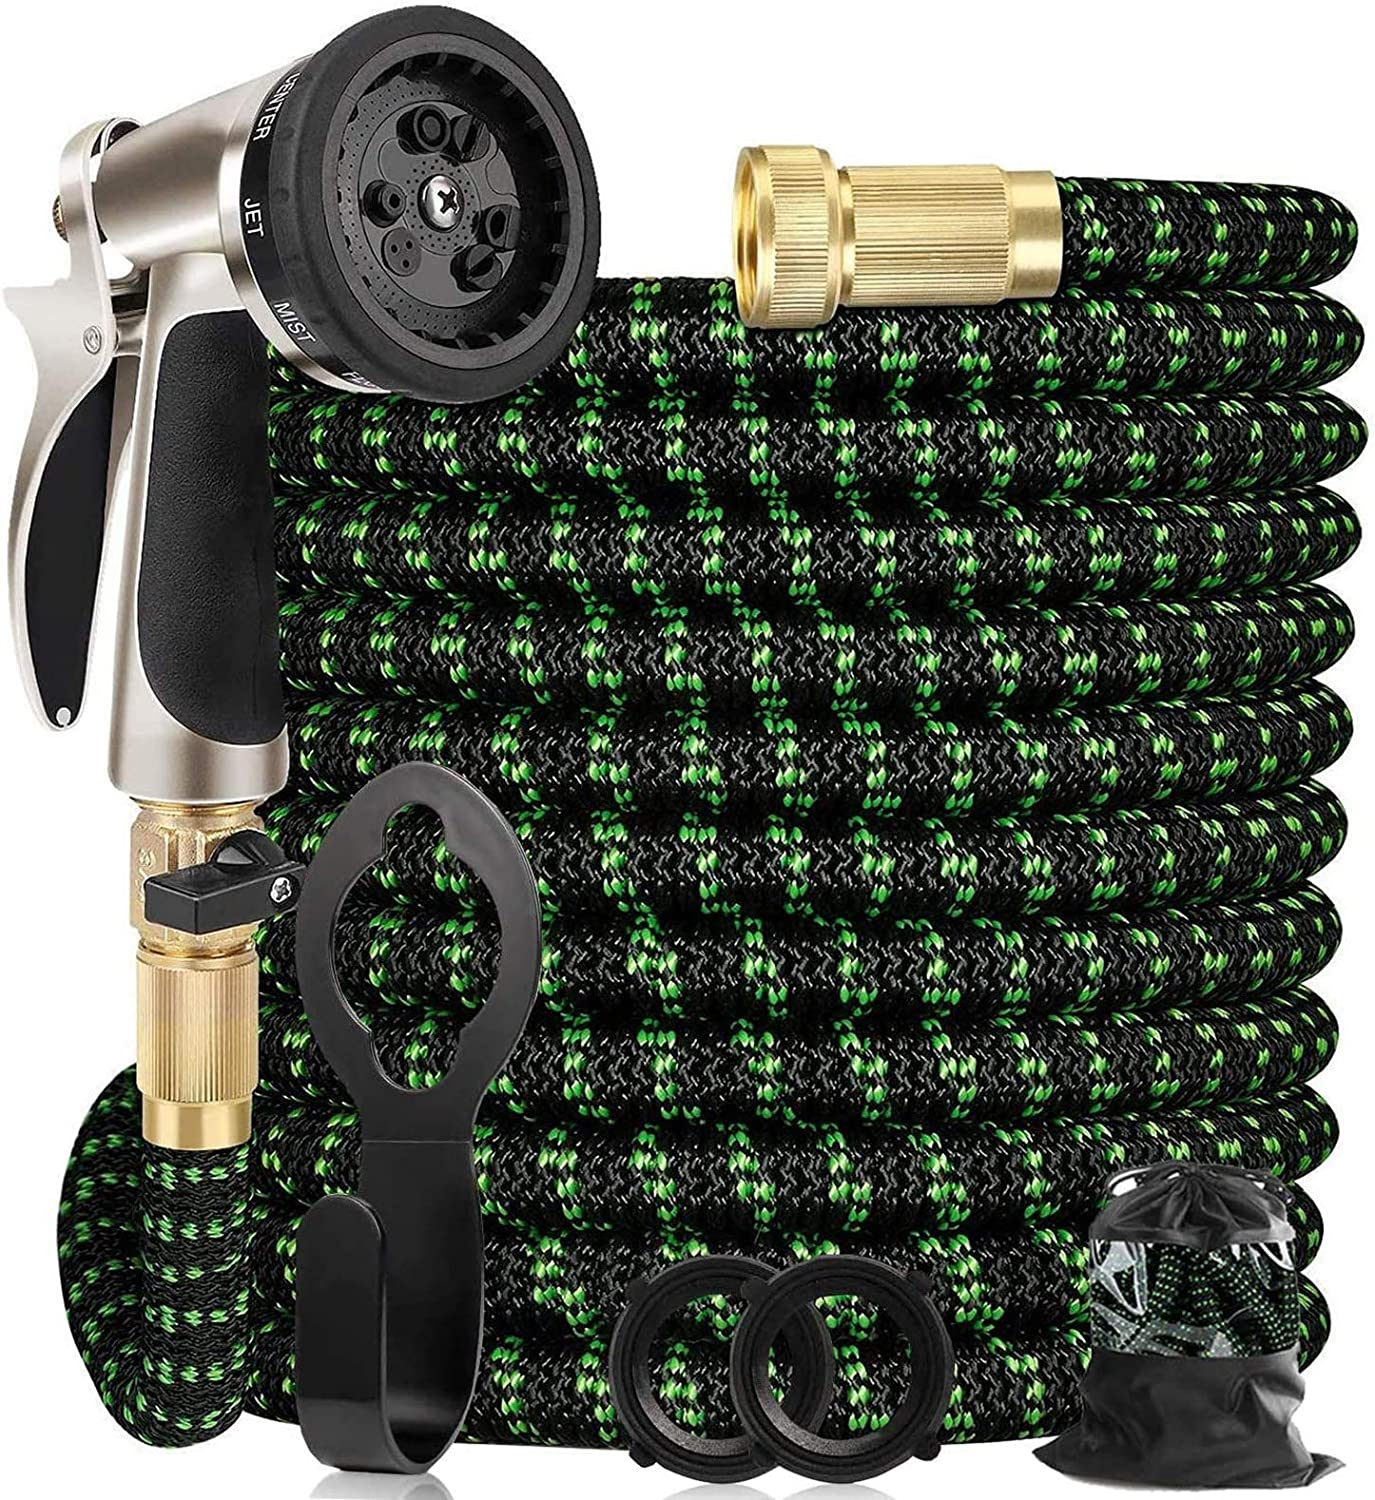 "Haliluya Garden Hose 50FT, Expandable Garden Hose & 9 Function Spray Nozzle 50 FT Lightweight Water Hose with Durable 4-Layers Latex | Extra Strength 3750D Fabric | 3/4"" Solid Brass Connectors"